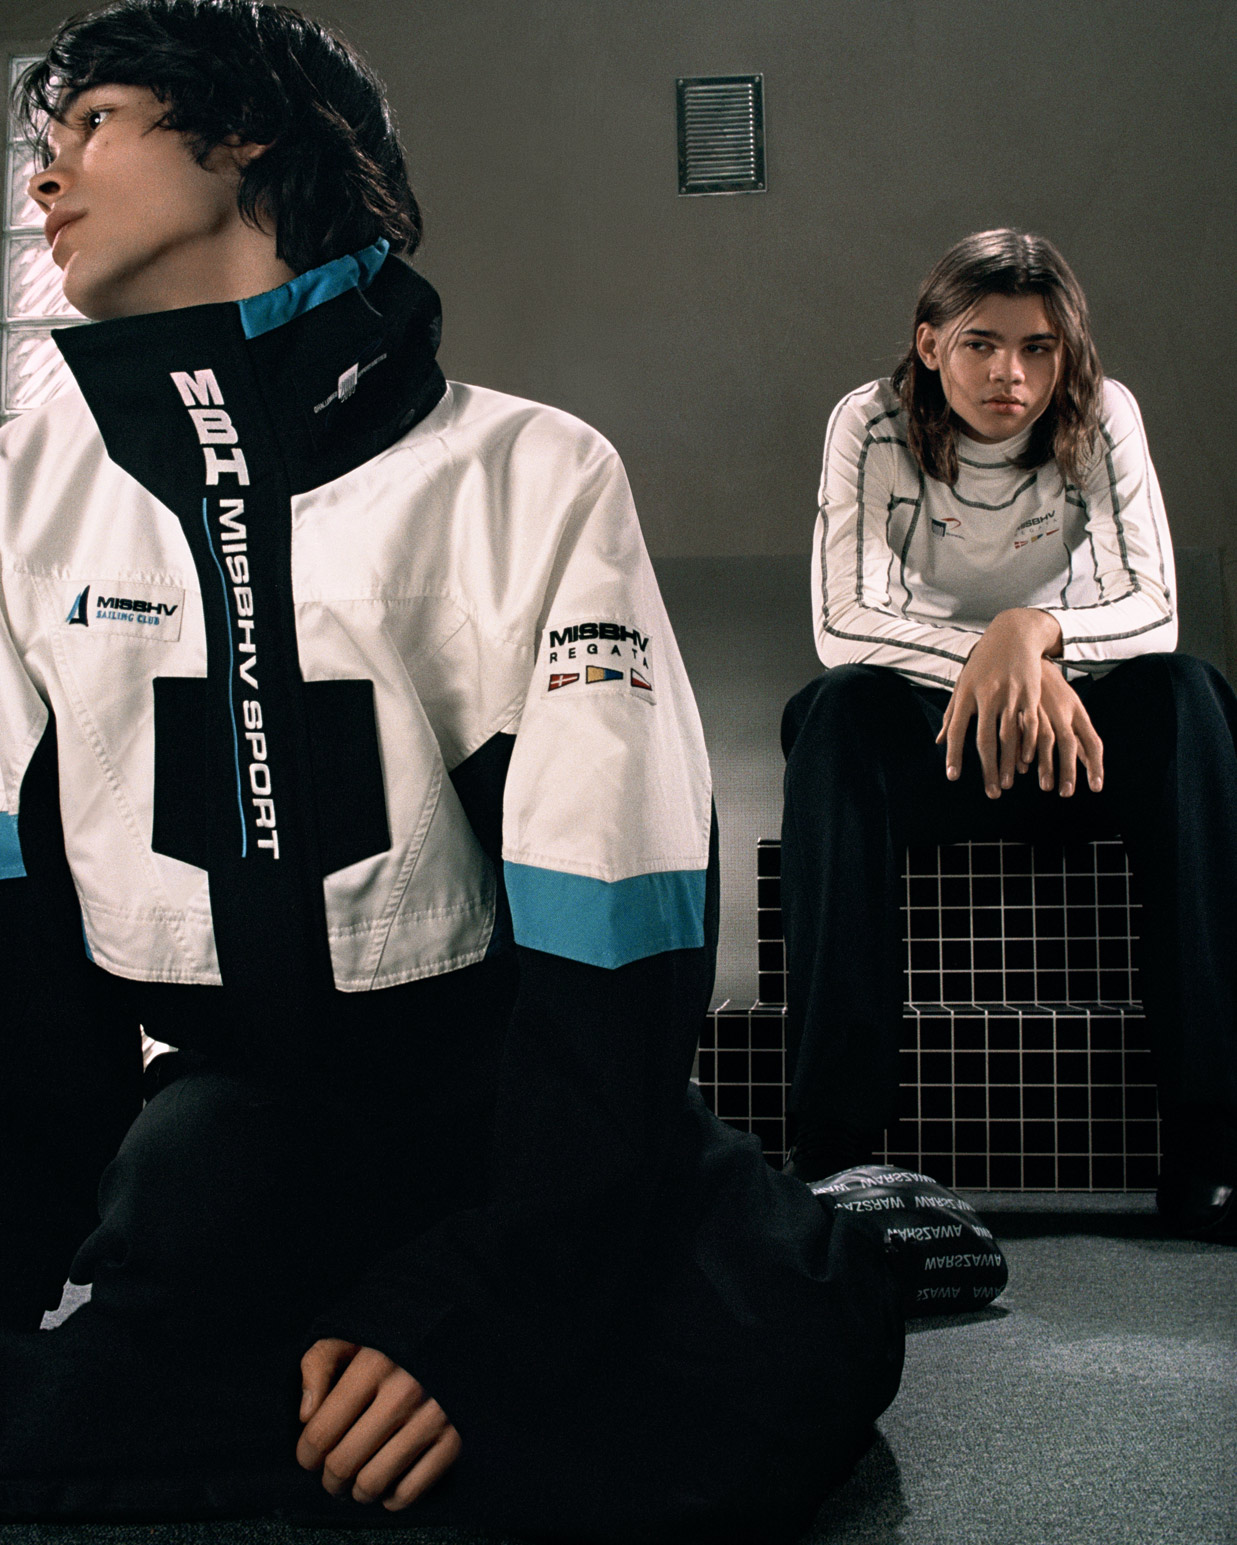 Misbhv Men's Campaign Sport Sailing Jacket Cropped Sailing Fitted Top White Warszawa Moon Trainer in Black and White SS20